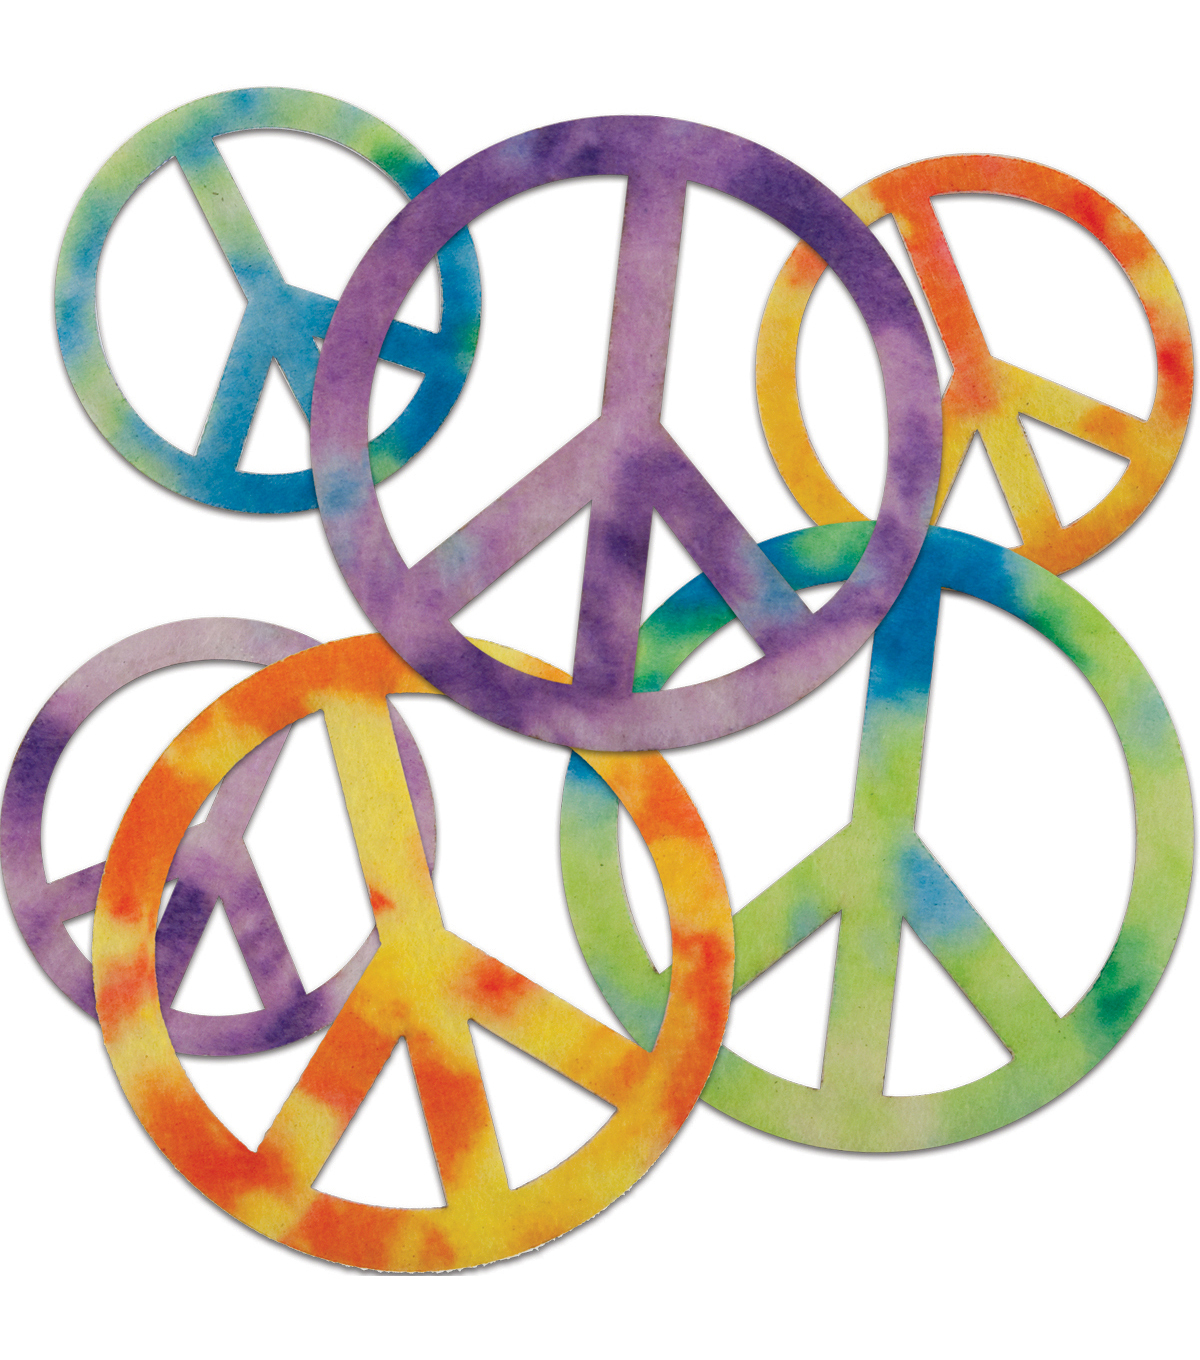 1200x1360 Stick It Felt Shapes 24pkg Peace Signs Joann